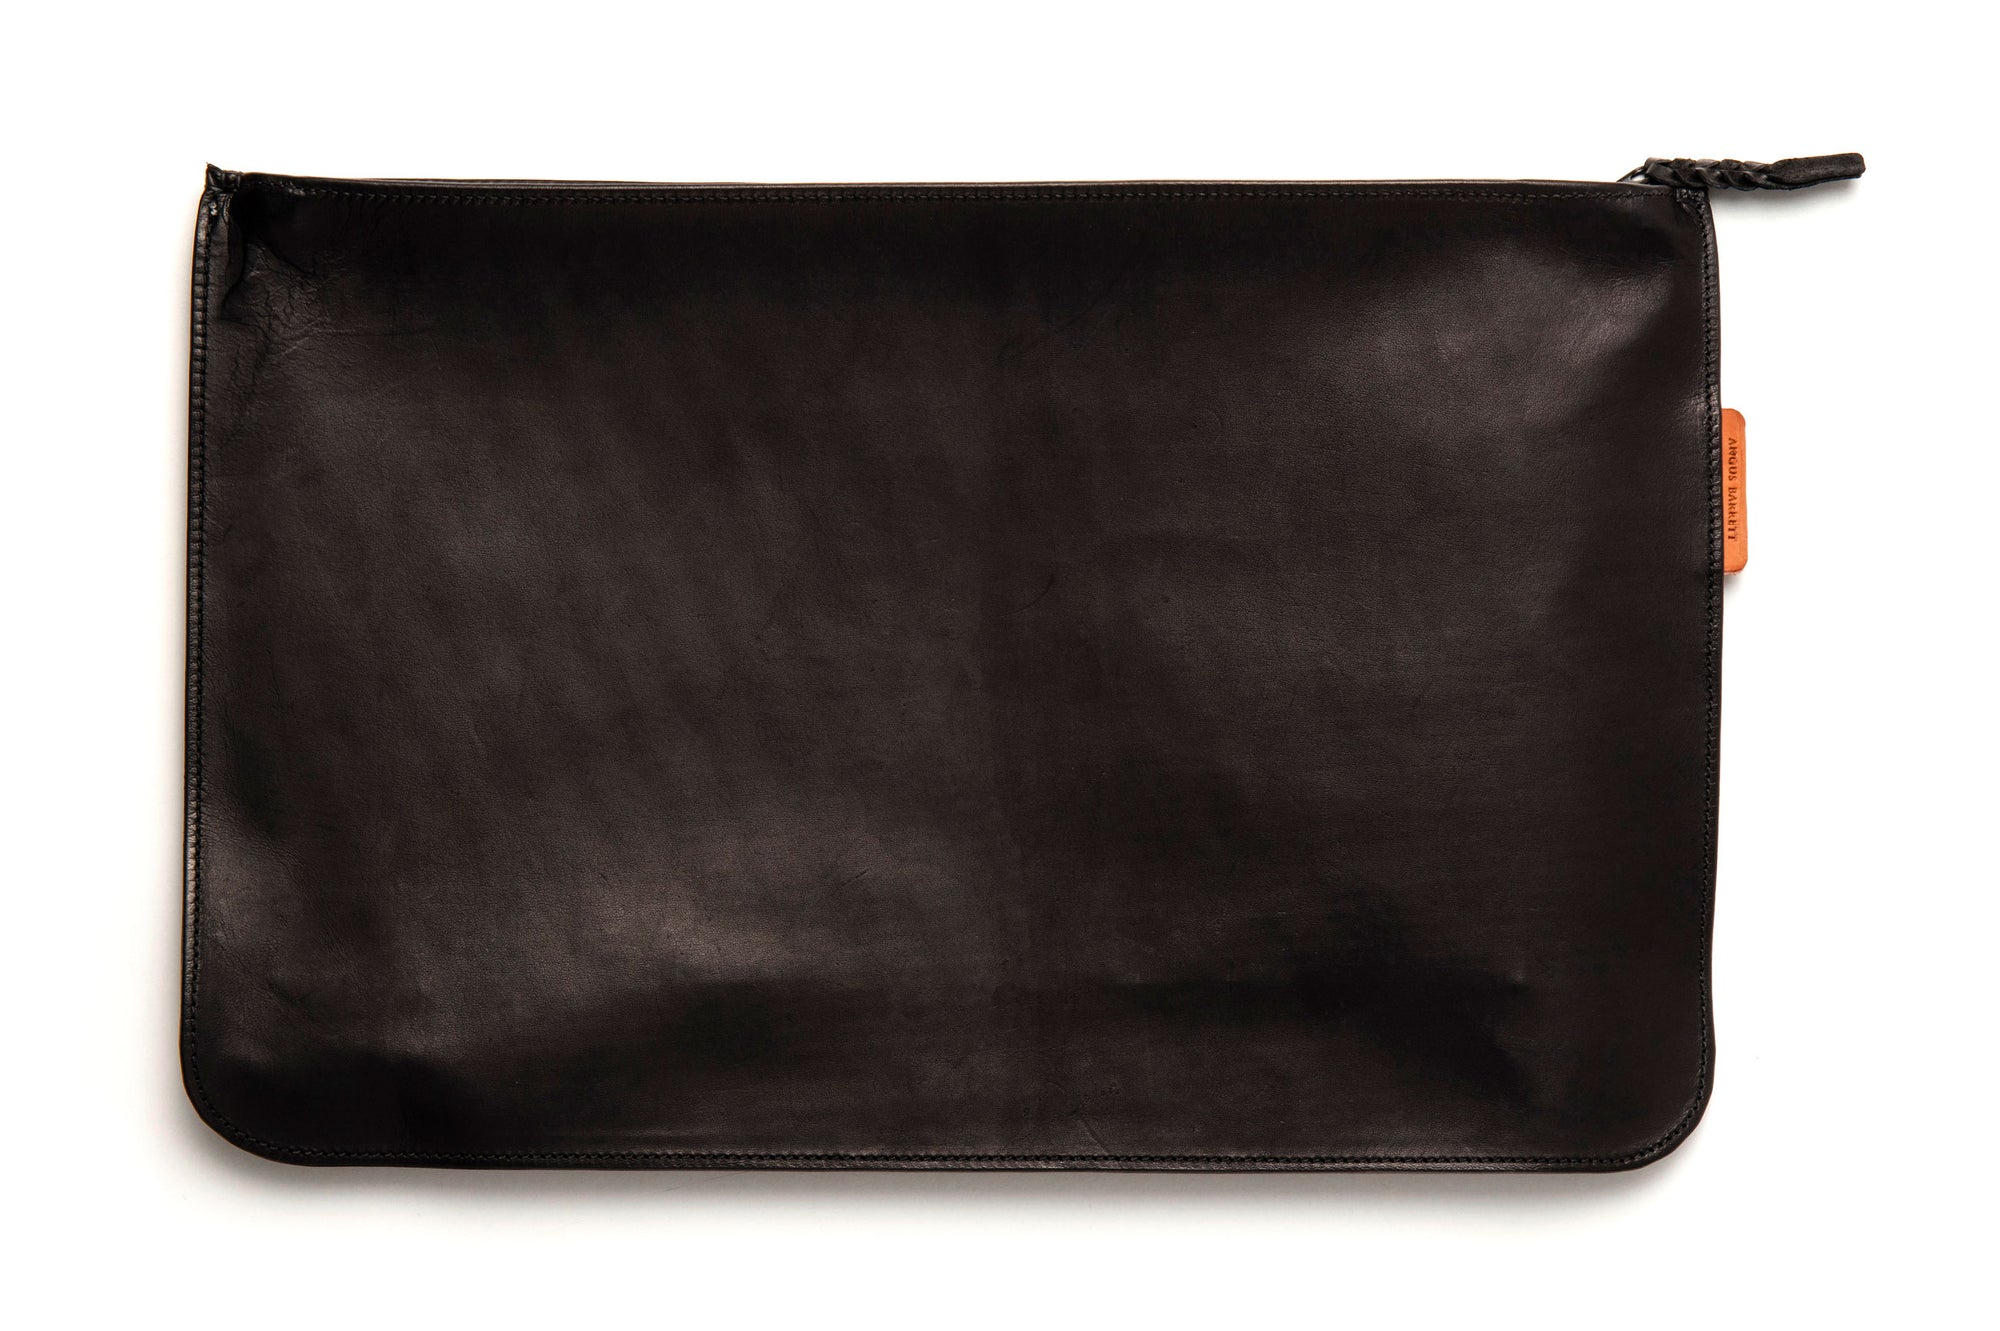 Kangaroo Leather Document And Tablet Case - Black